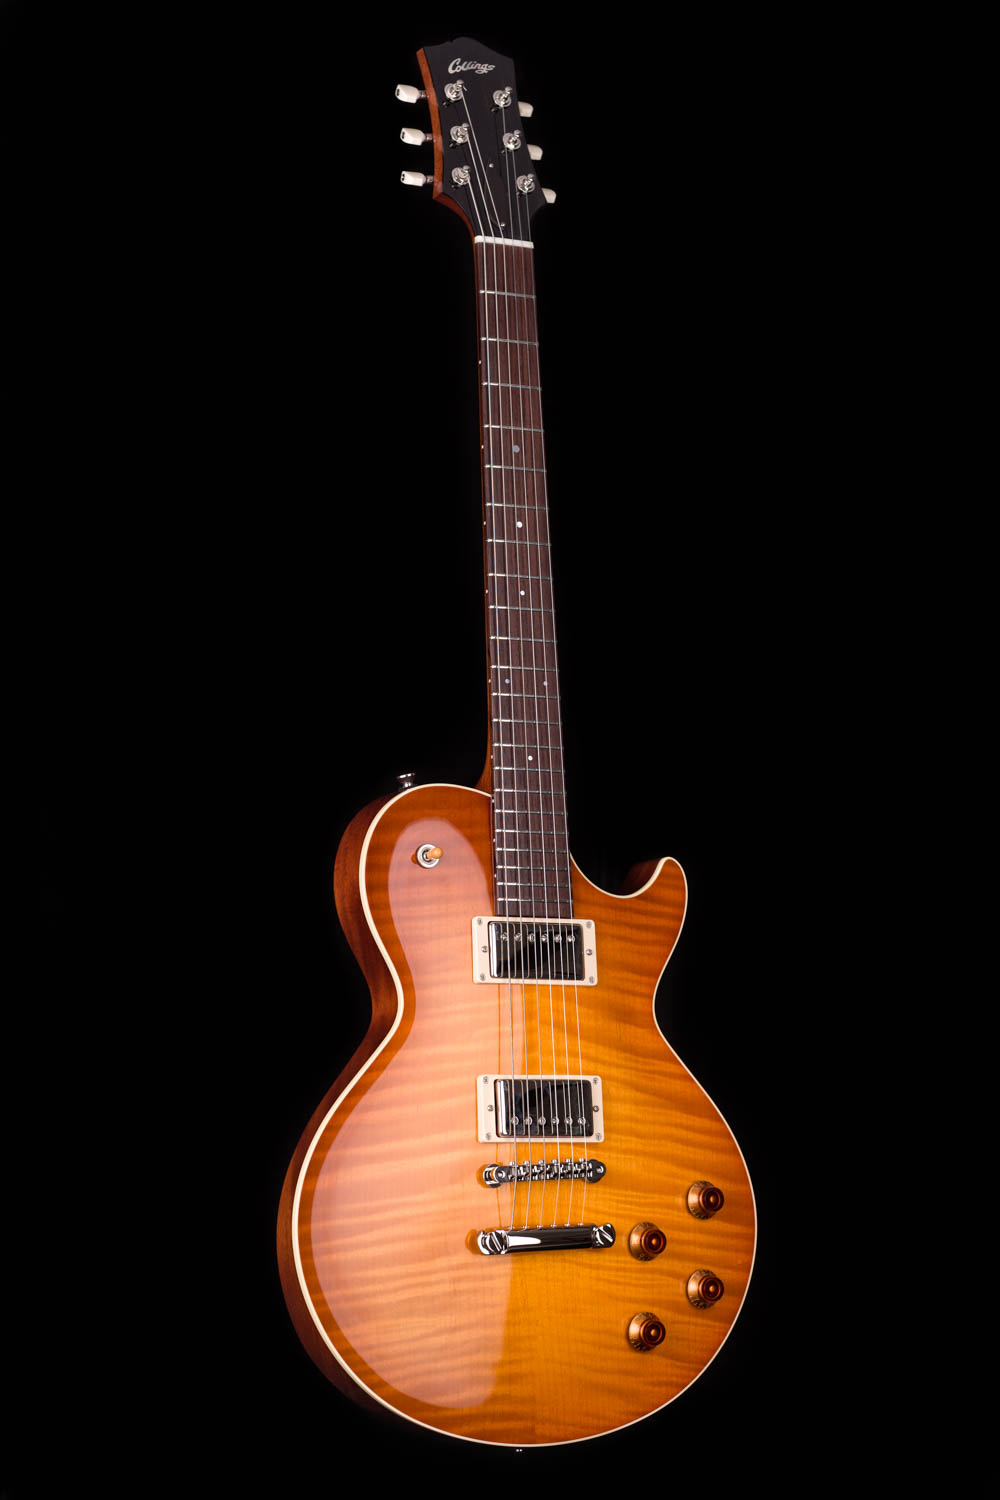 Collings Cl Solid Body Electric Guitar